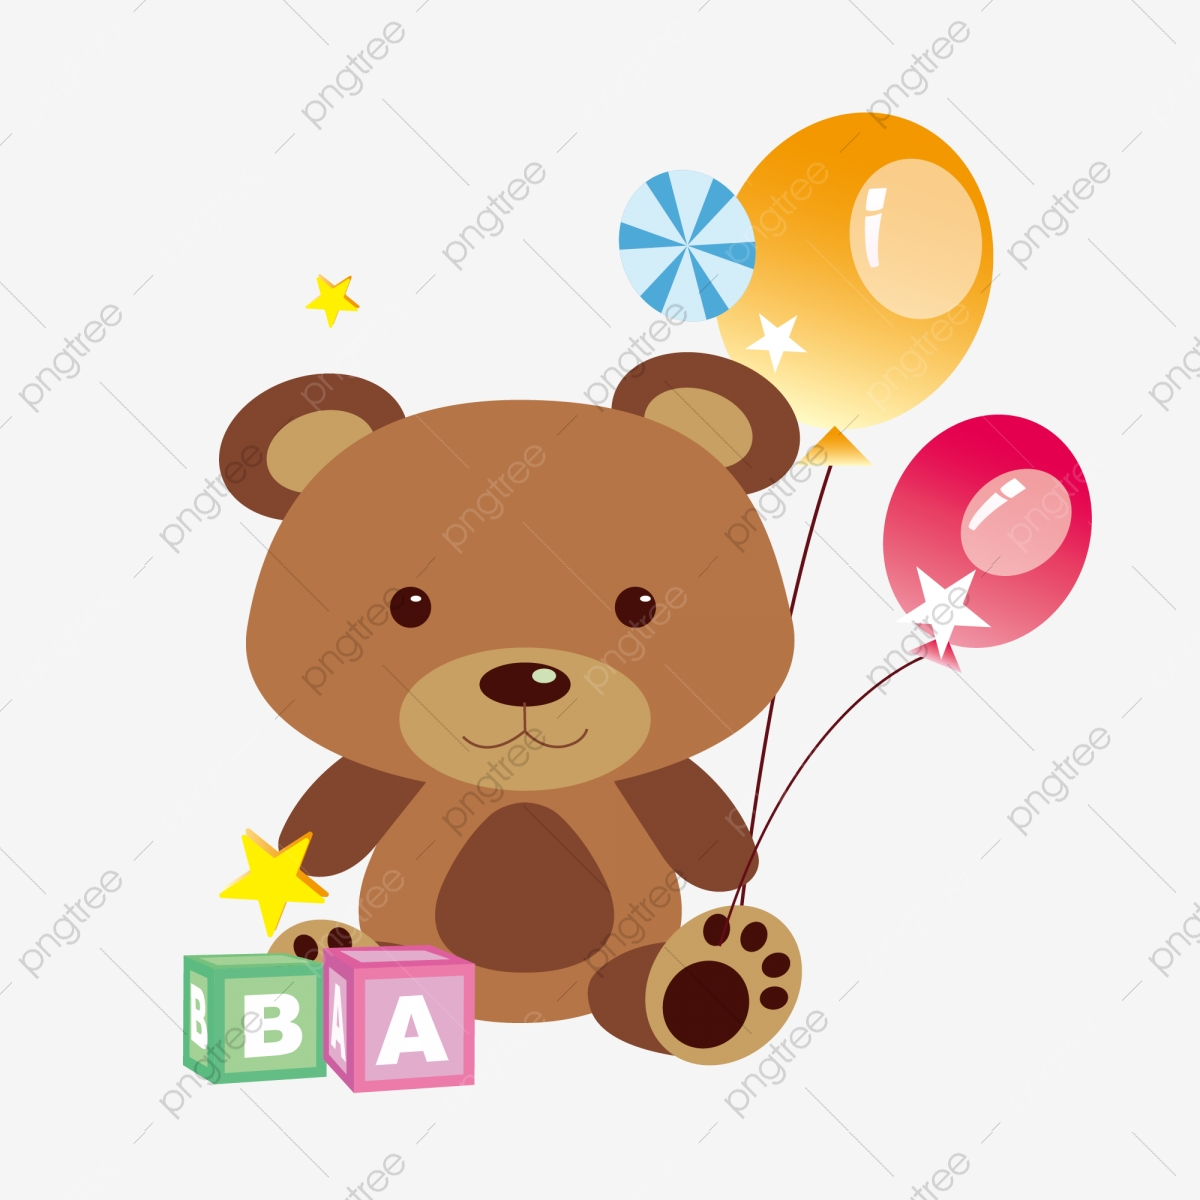 A bear in a box png clipart picture black and white Lovely Toy Box, Playful, Toy Box, Teddy Bear PNG Transparent Clipart ... picture black and white